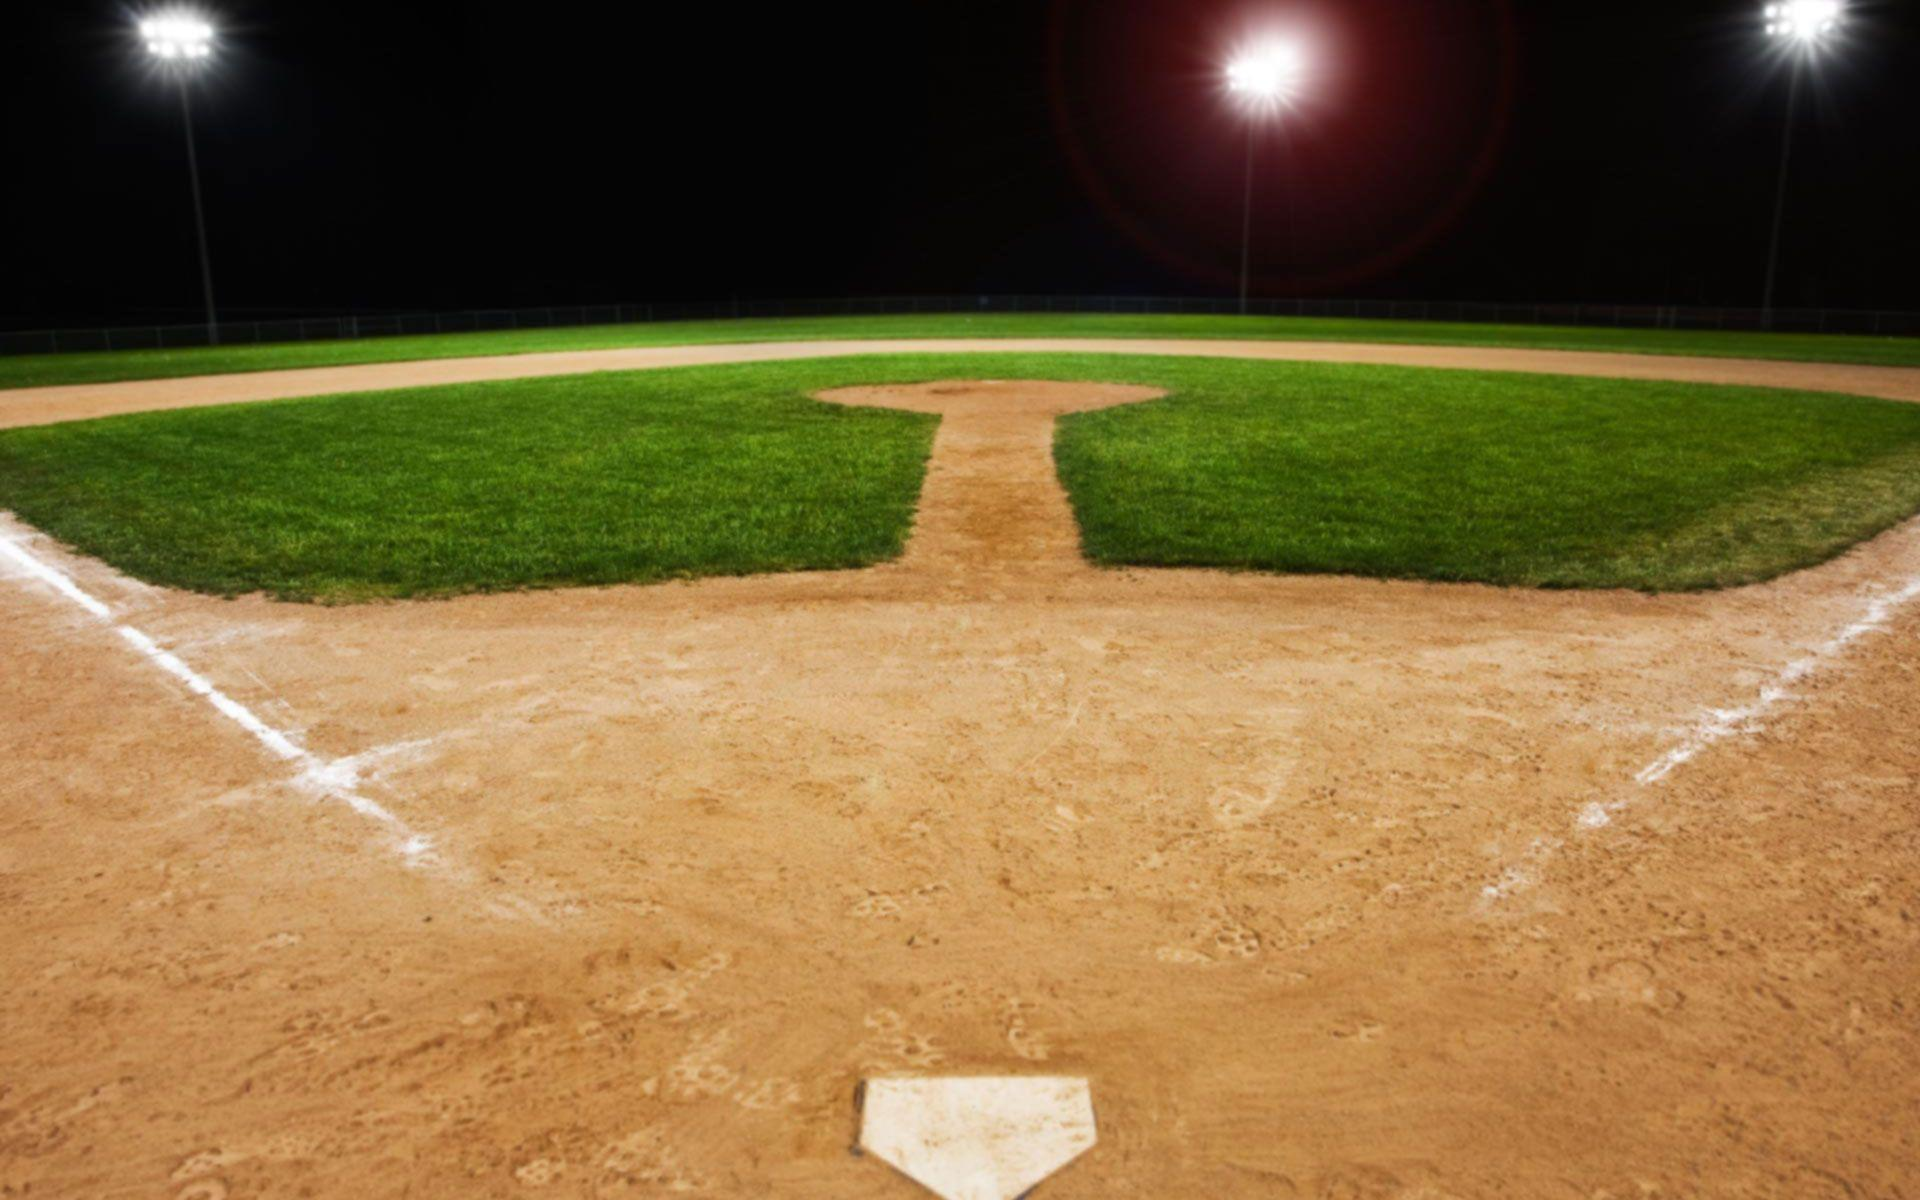 Cool Baseball Wallpapers Hd Image & Pictures